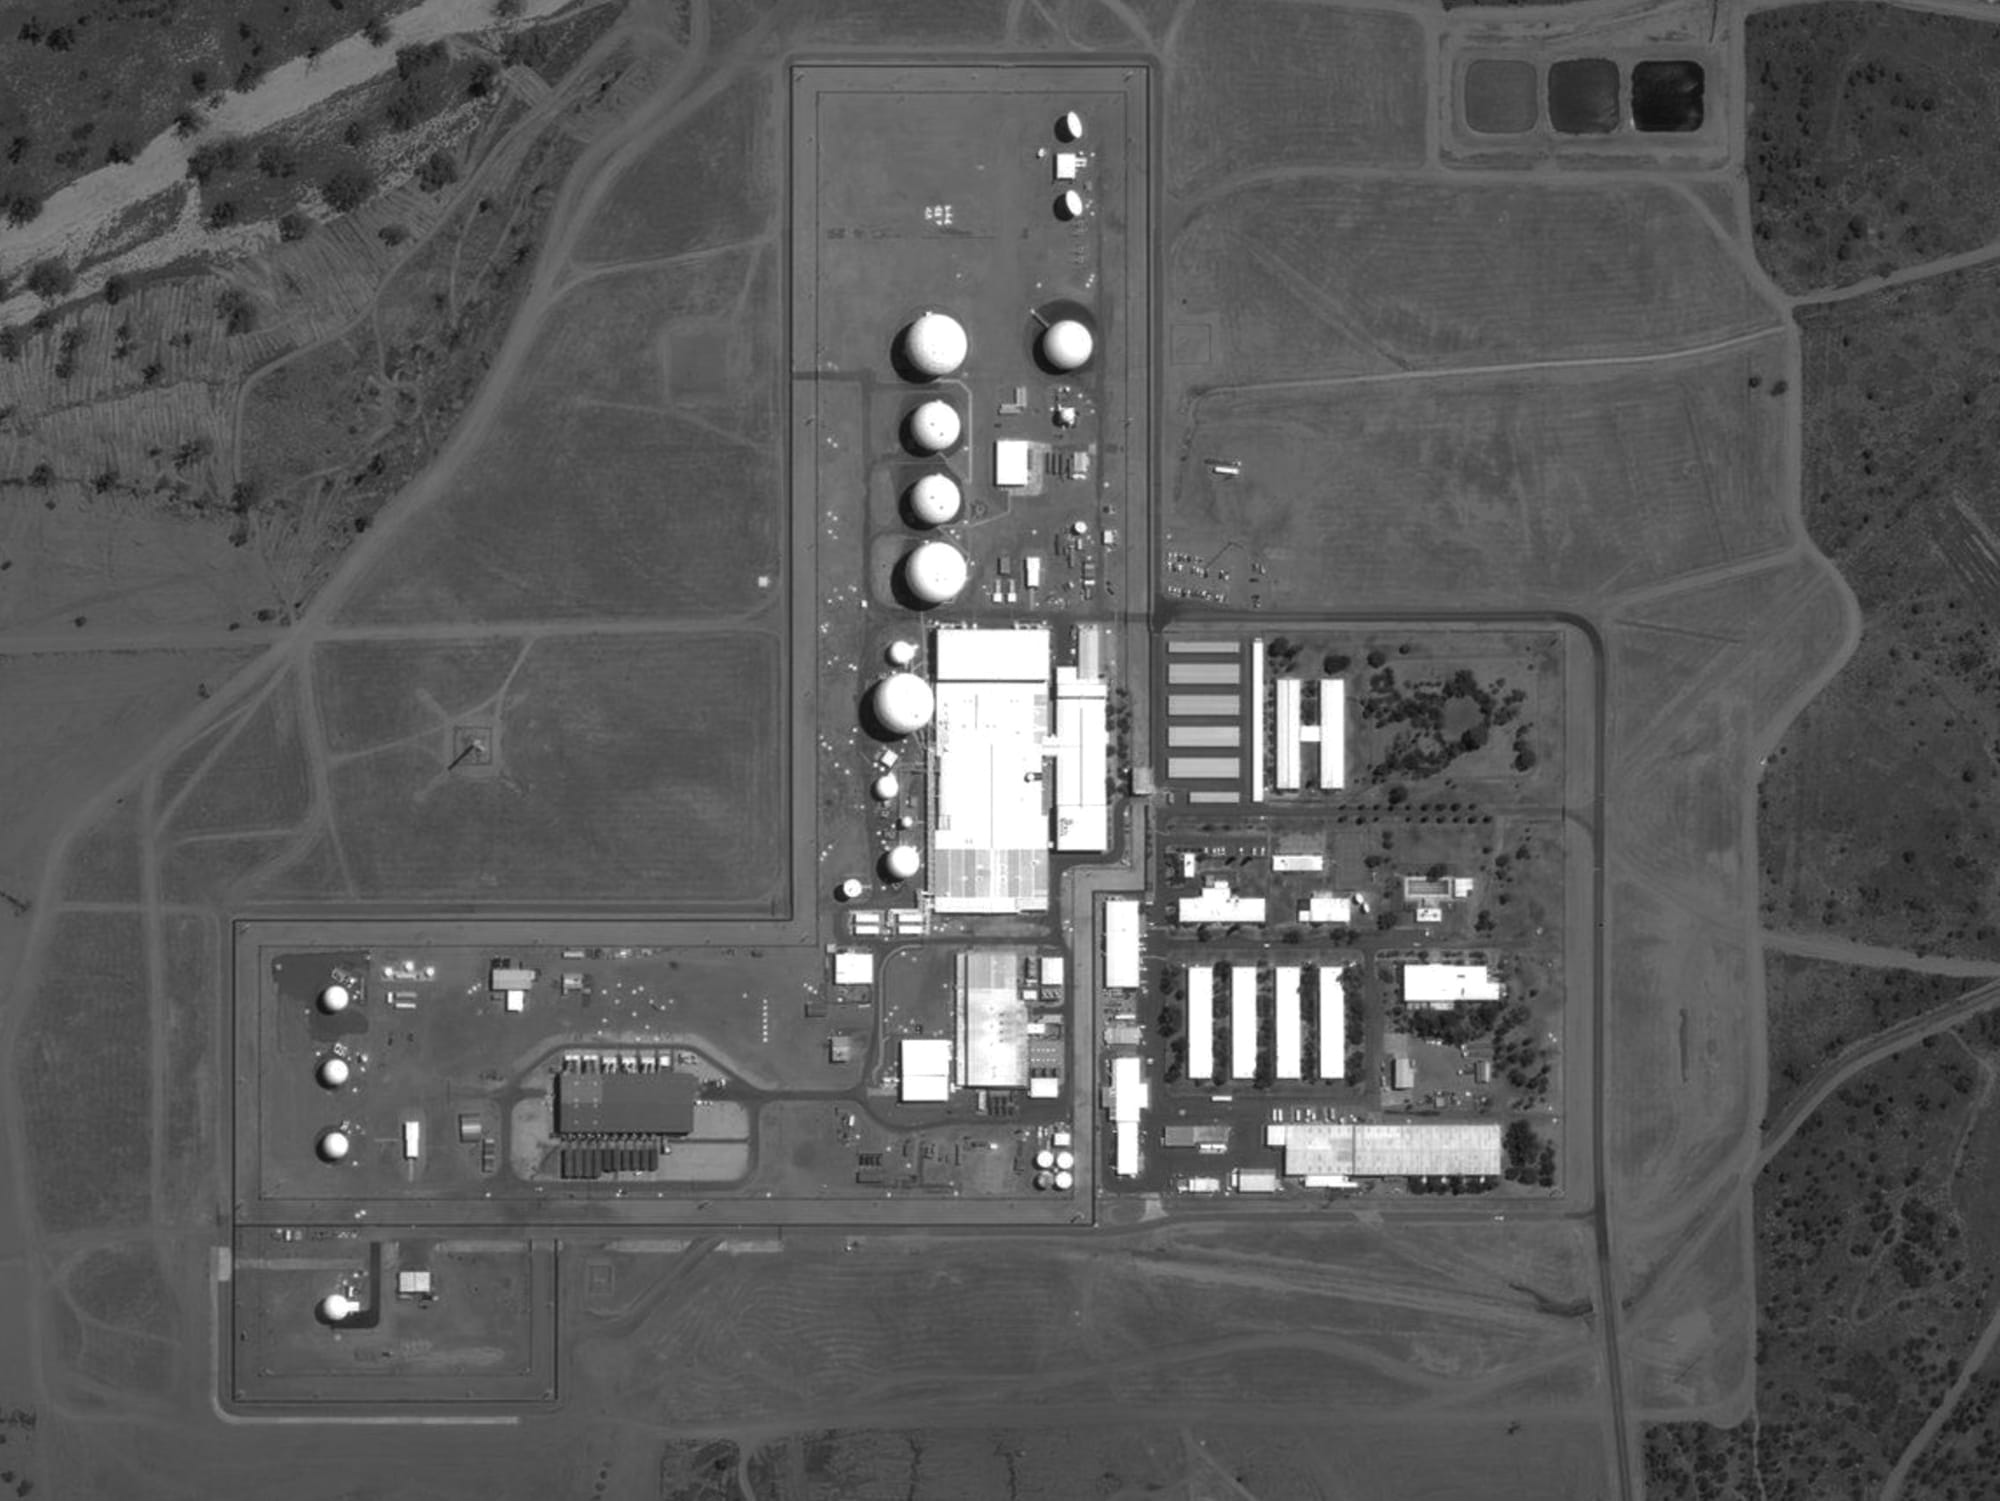 Joint Defence Facility Pine Gap, as shown on Bing Maps, 2017. Screenshot, Bing Maps